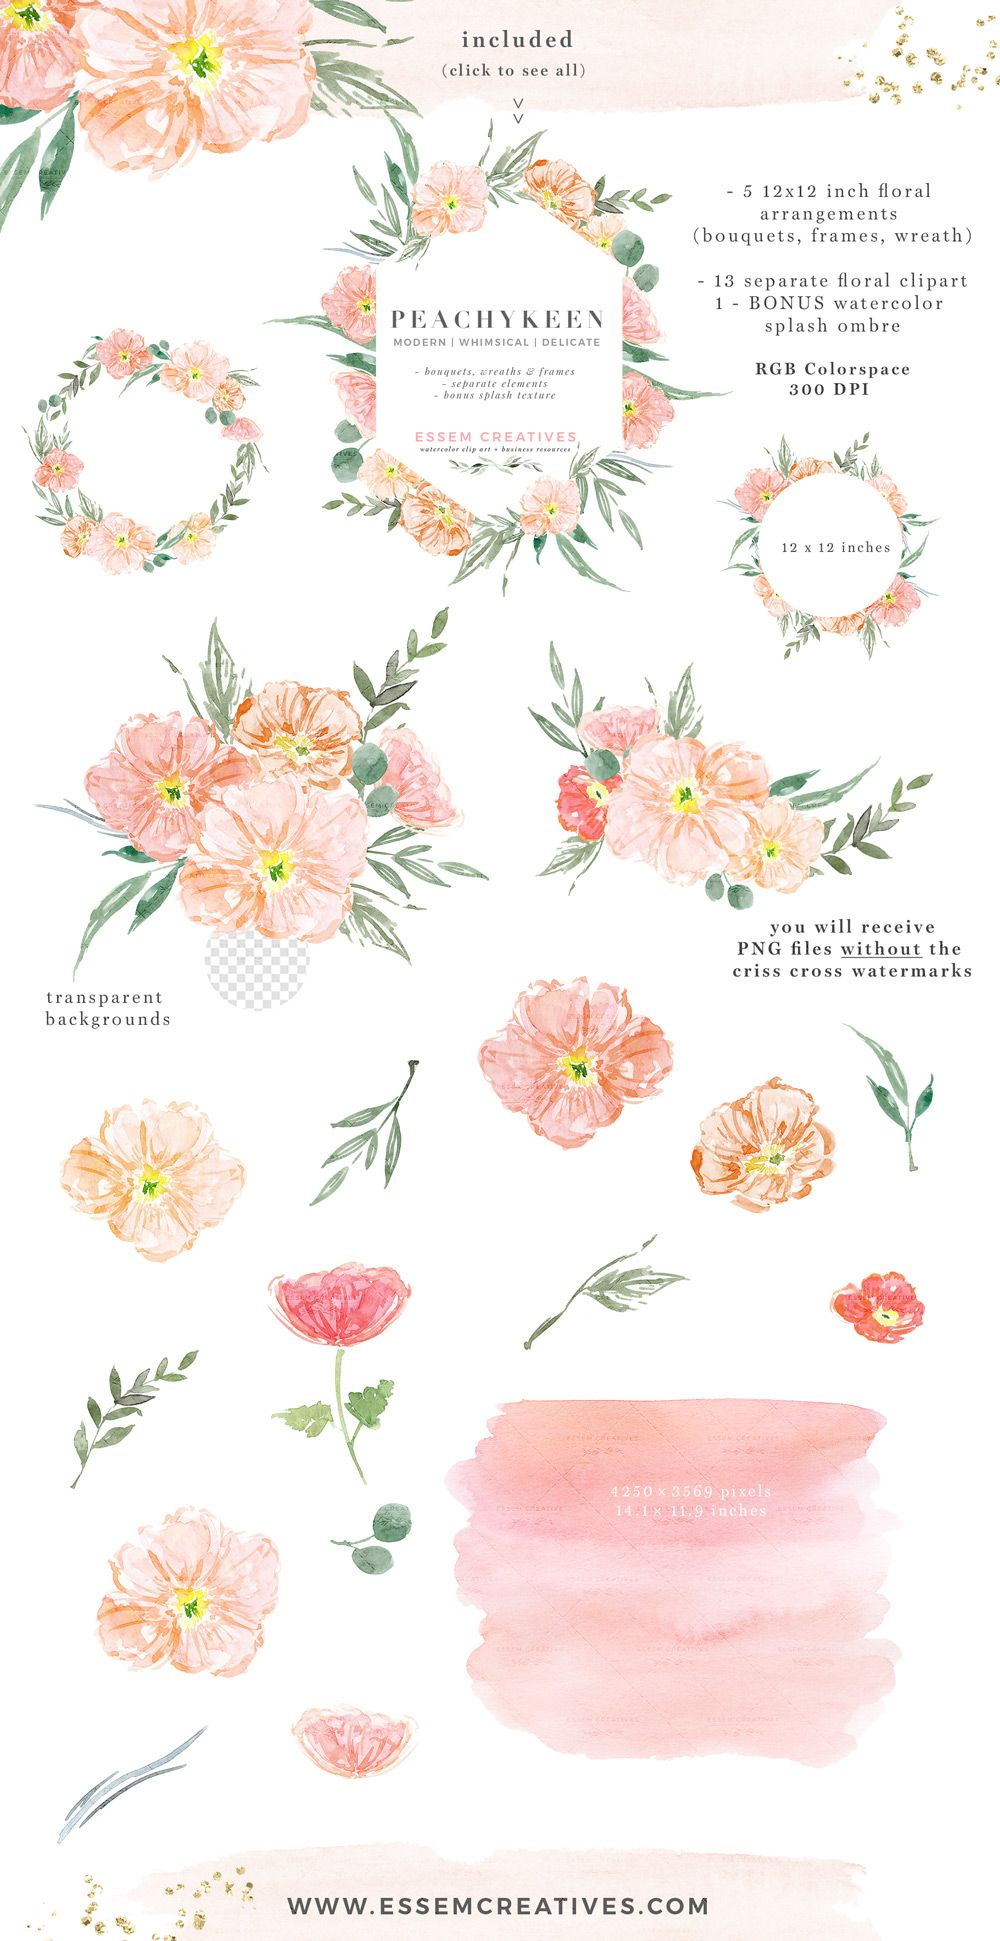 Blush Pink Watercolor Flowers Clipart Blush And Sage Floral Graphics Watercolor Floral Wedding Invitations Wedding Planner Logo Wedding Invitations Logo